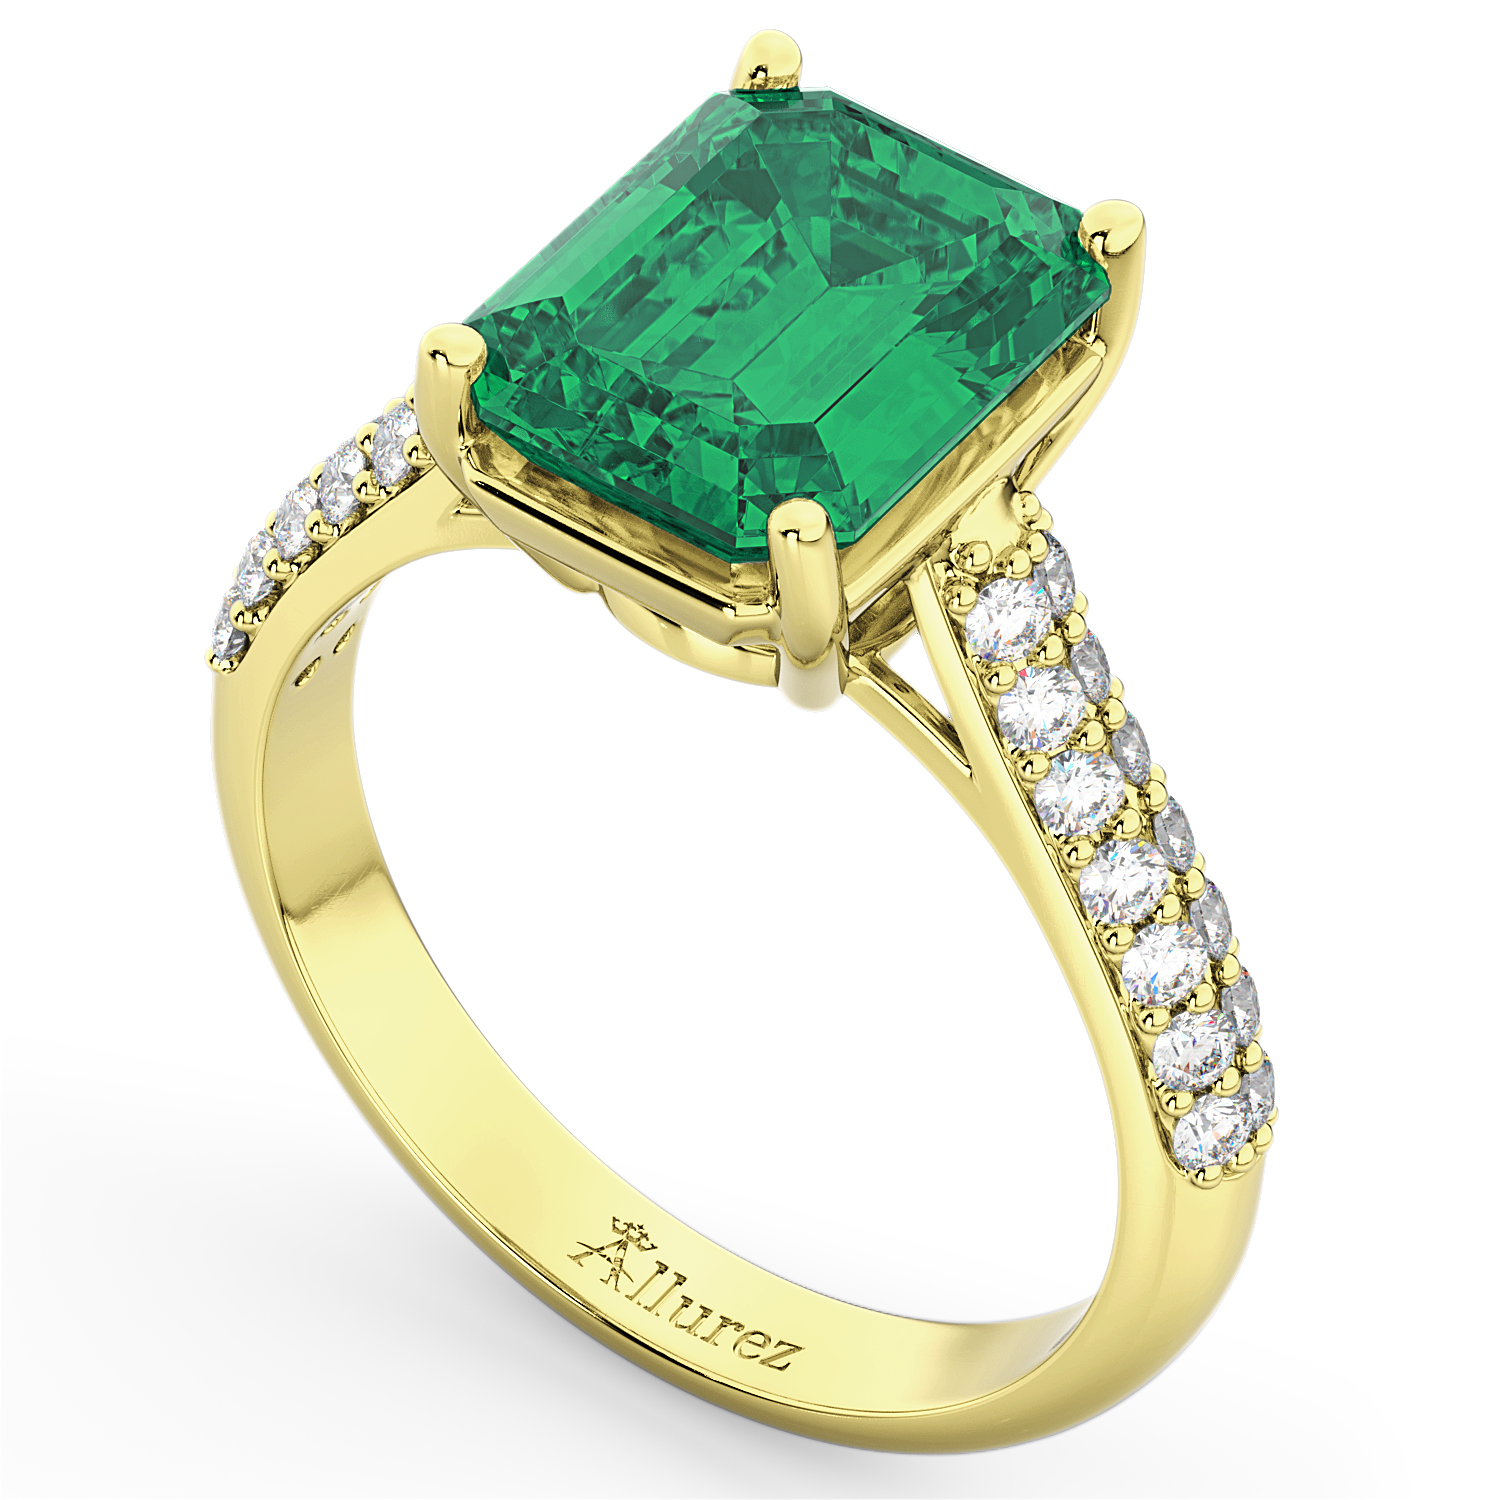 emerald cut emerald engagement ring 18k yellow